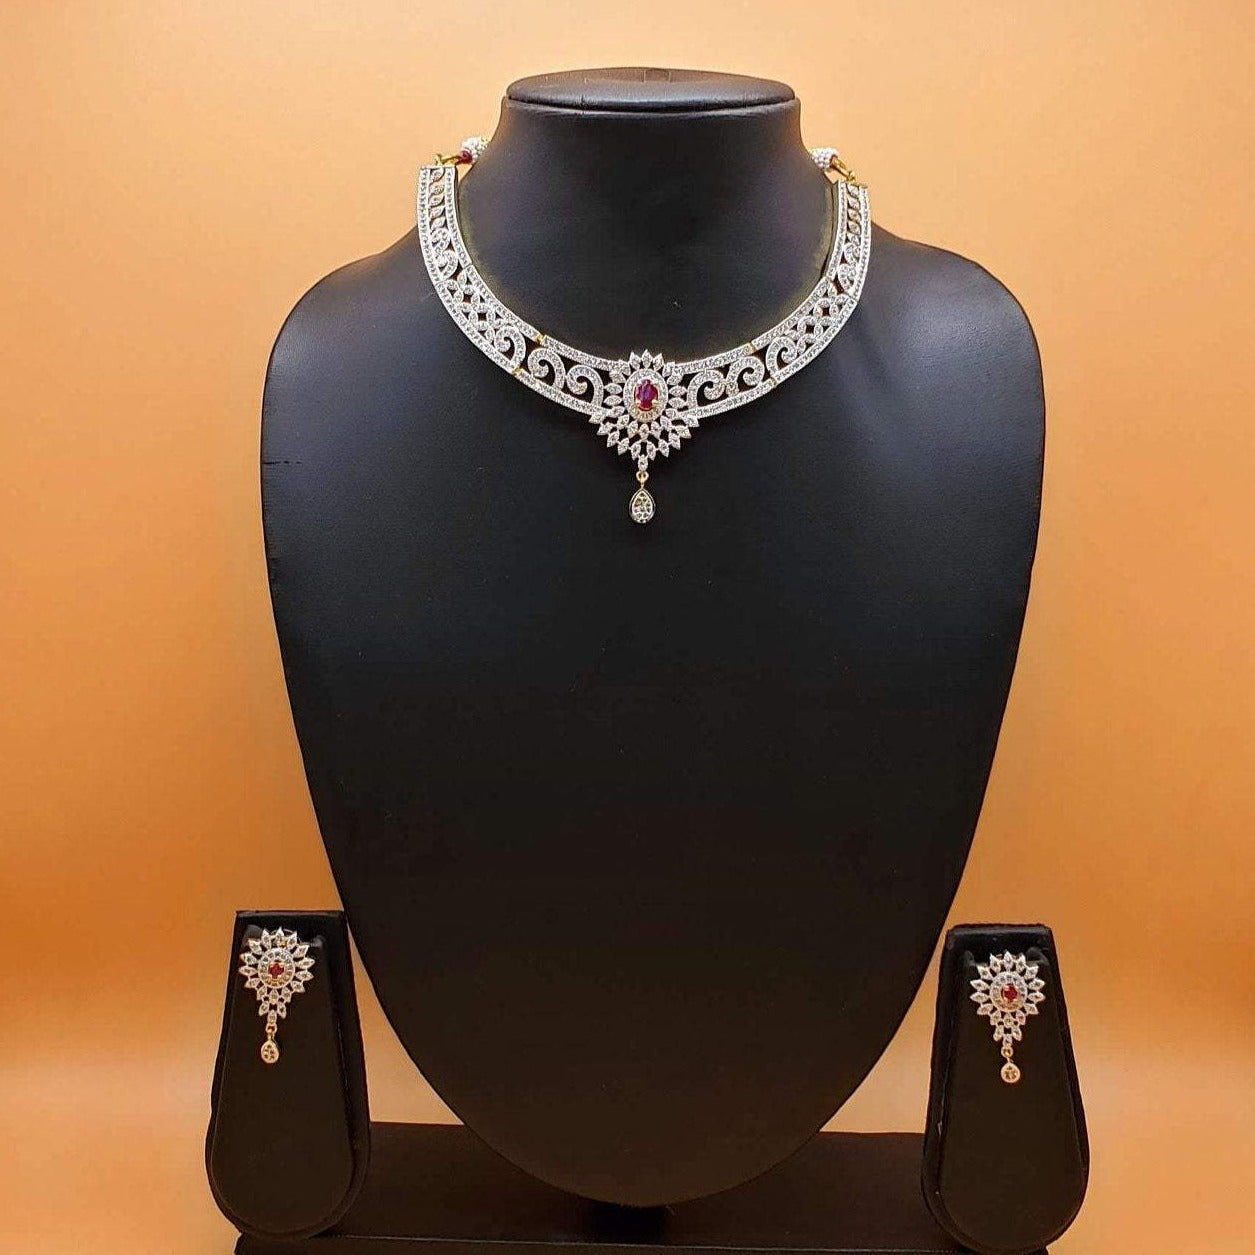 american diamond necklace set/cz diamond necklace set/wedding necklace set/Bollywood jewelry/Designer jewelry/Indian jewelry/diamond jewelry